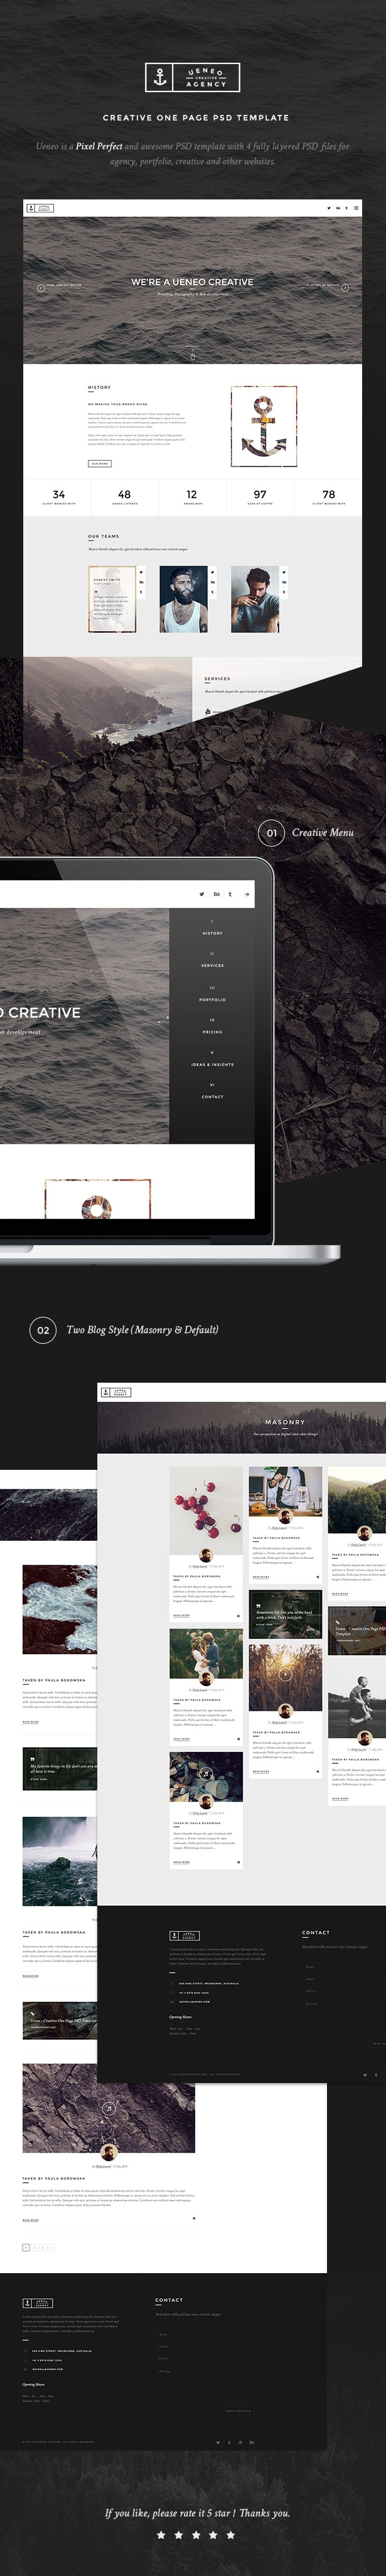 Ueneo - Creative One Page PSD Template - 1